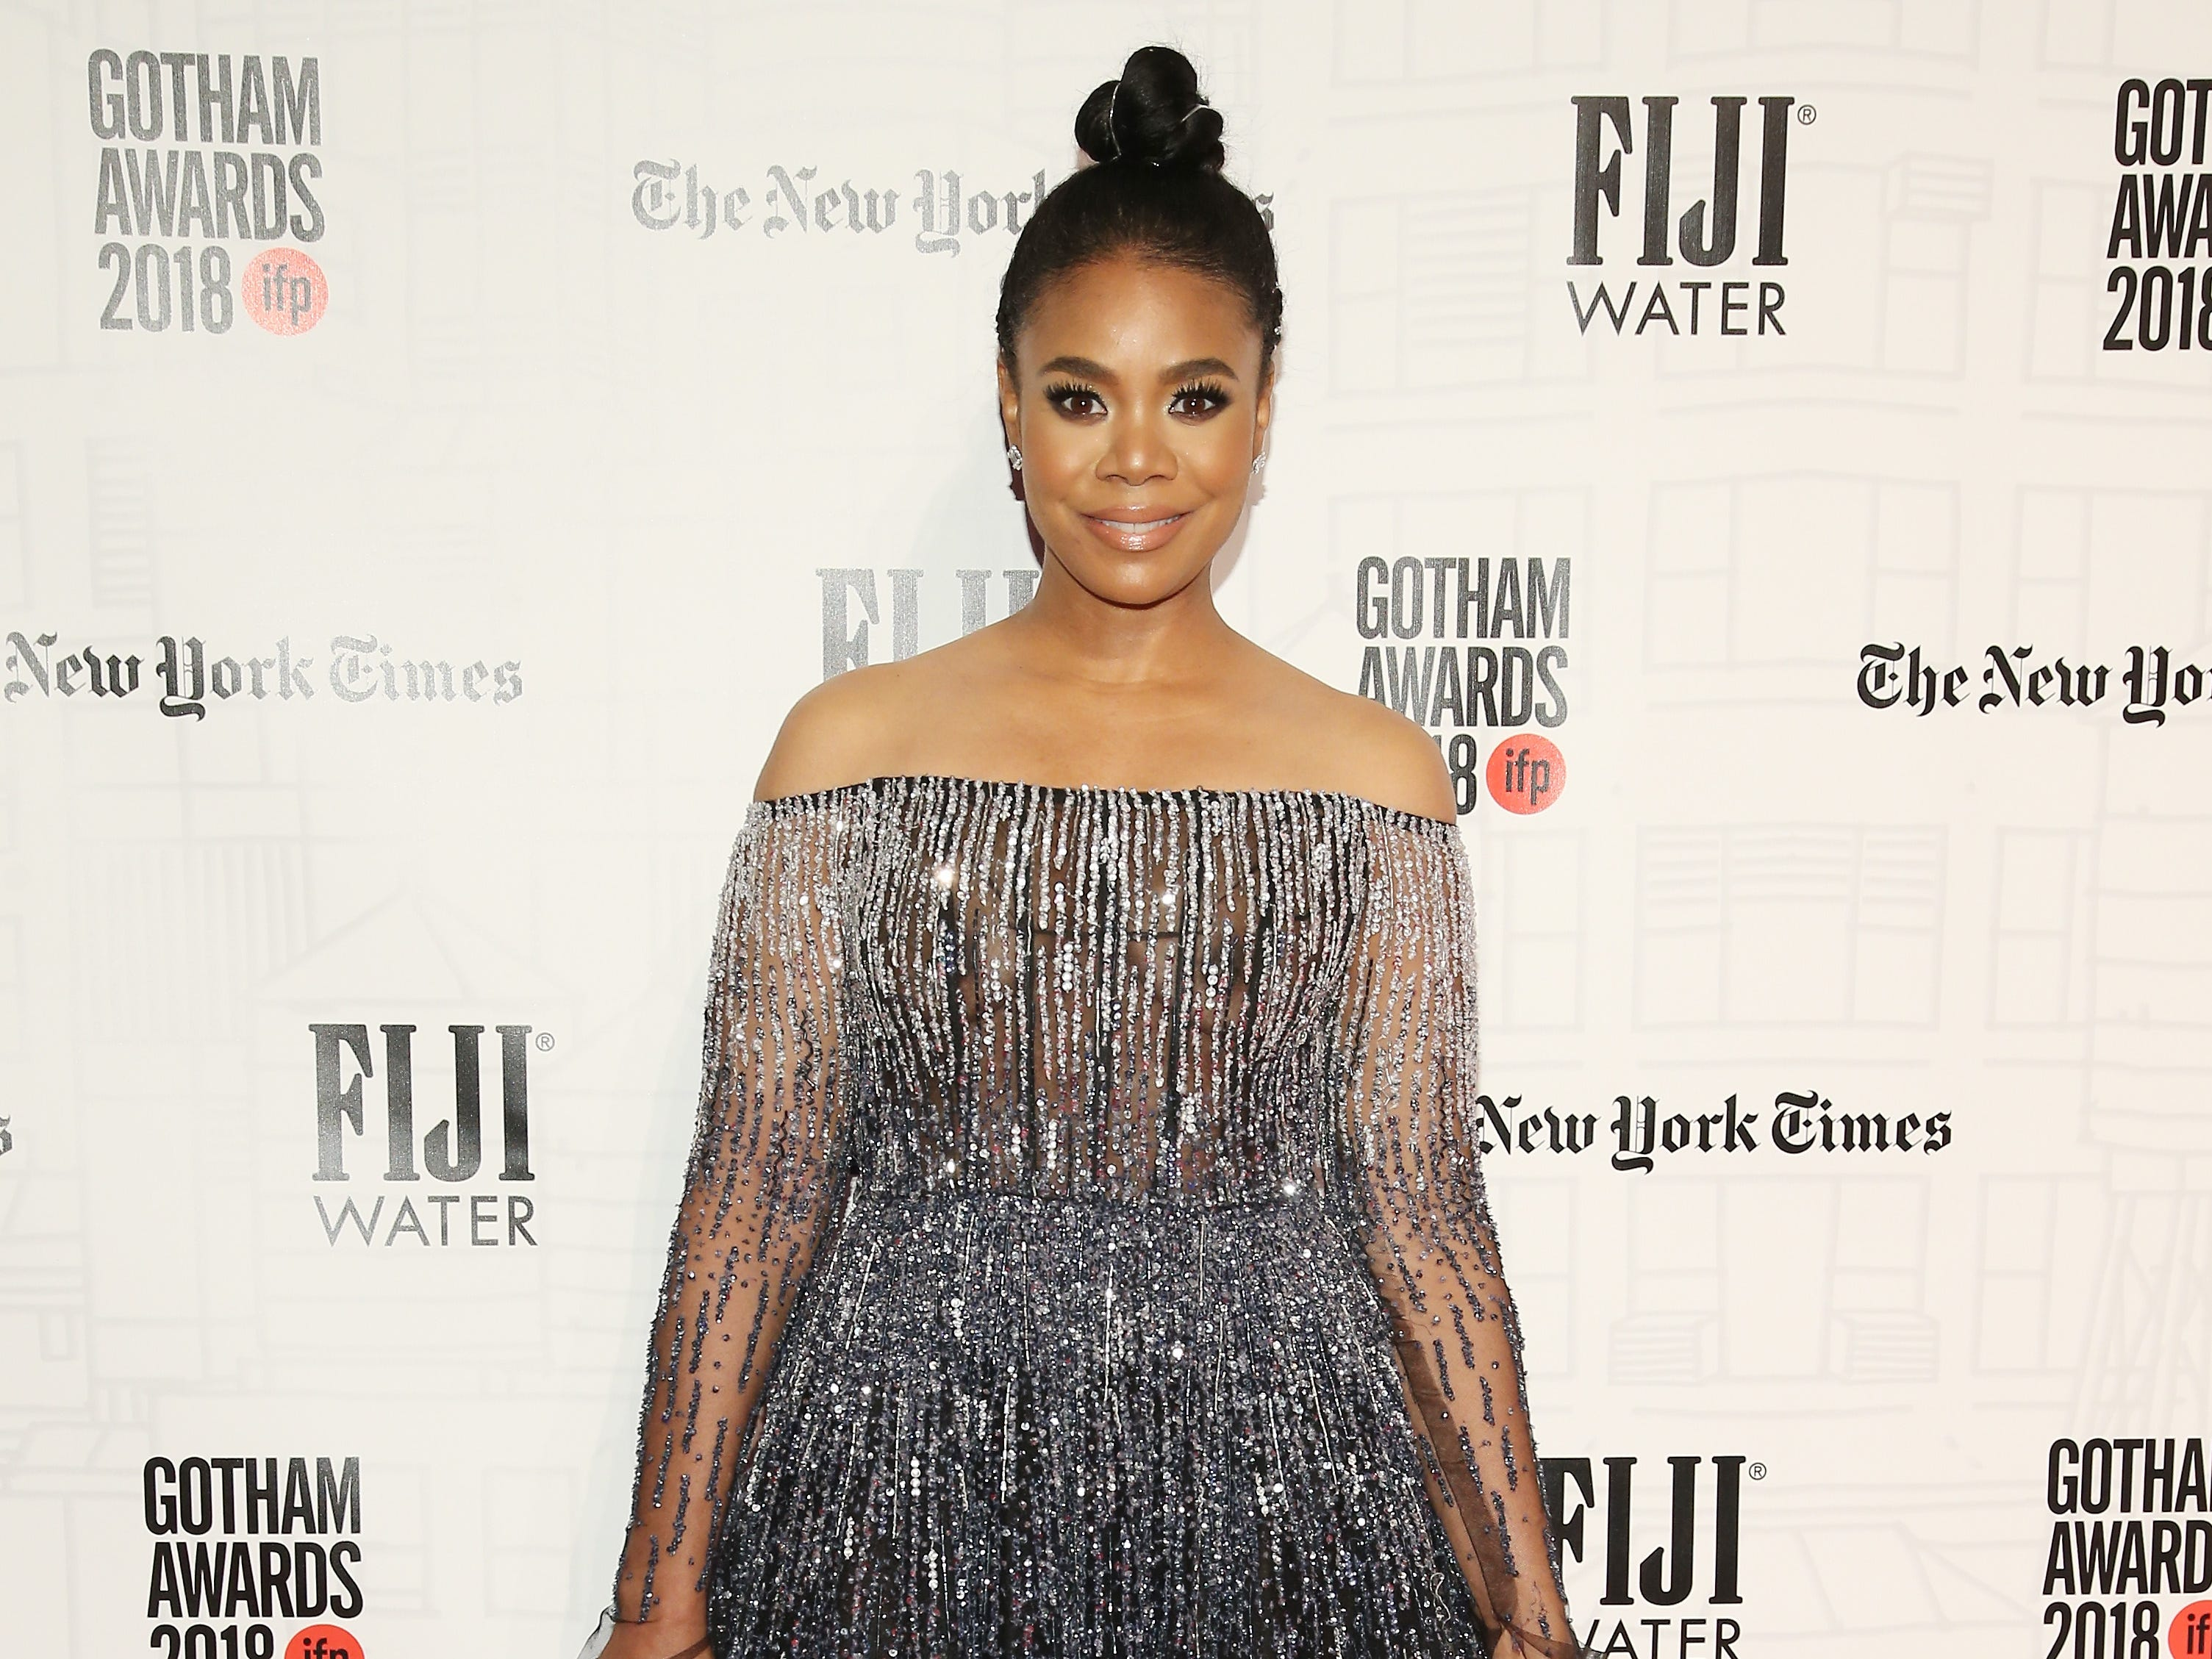 NEW YORK, NY - NOVEMBER 26: Regina Hall attends IFP's 27th Annual Gotham Independent Film Awards at Cipriani, Wall Street on November 26, 2018 in New York City.  (Photo by Jemal Countess/Getty Images for IFP) ORG XMIT: 775261541 ORIG FILE ID: 1065562508